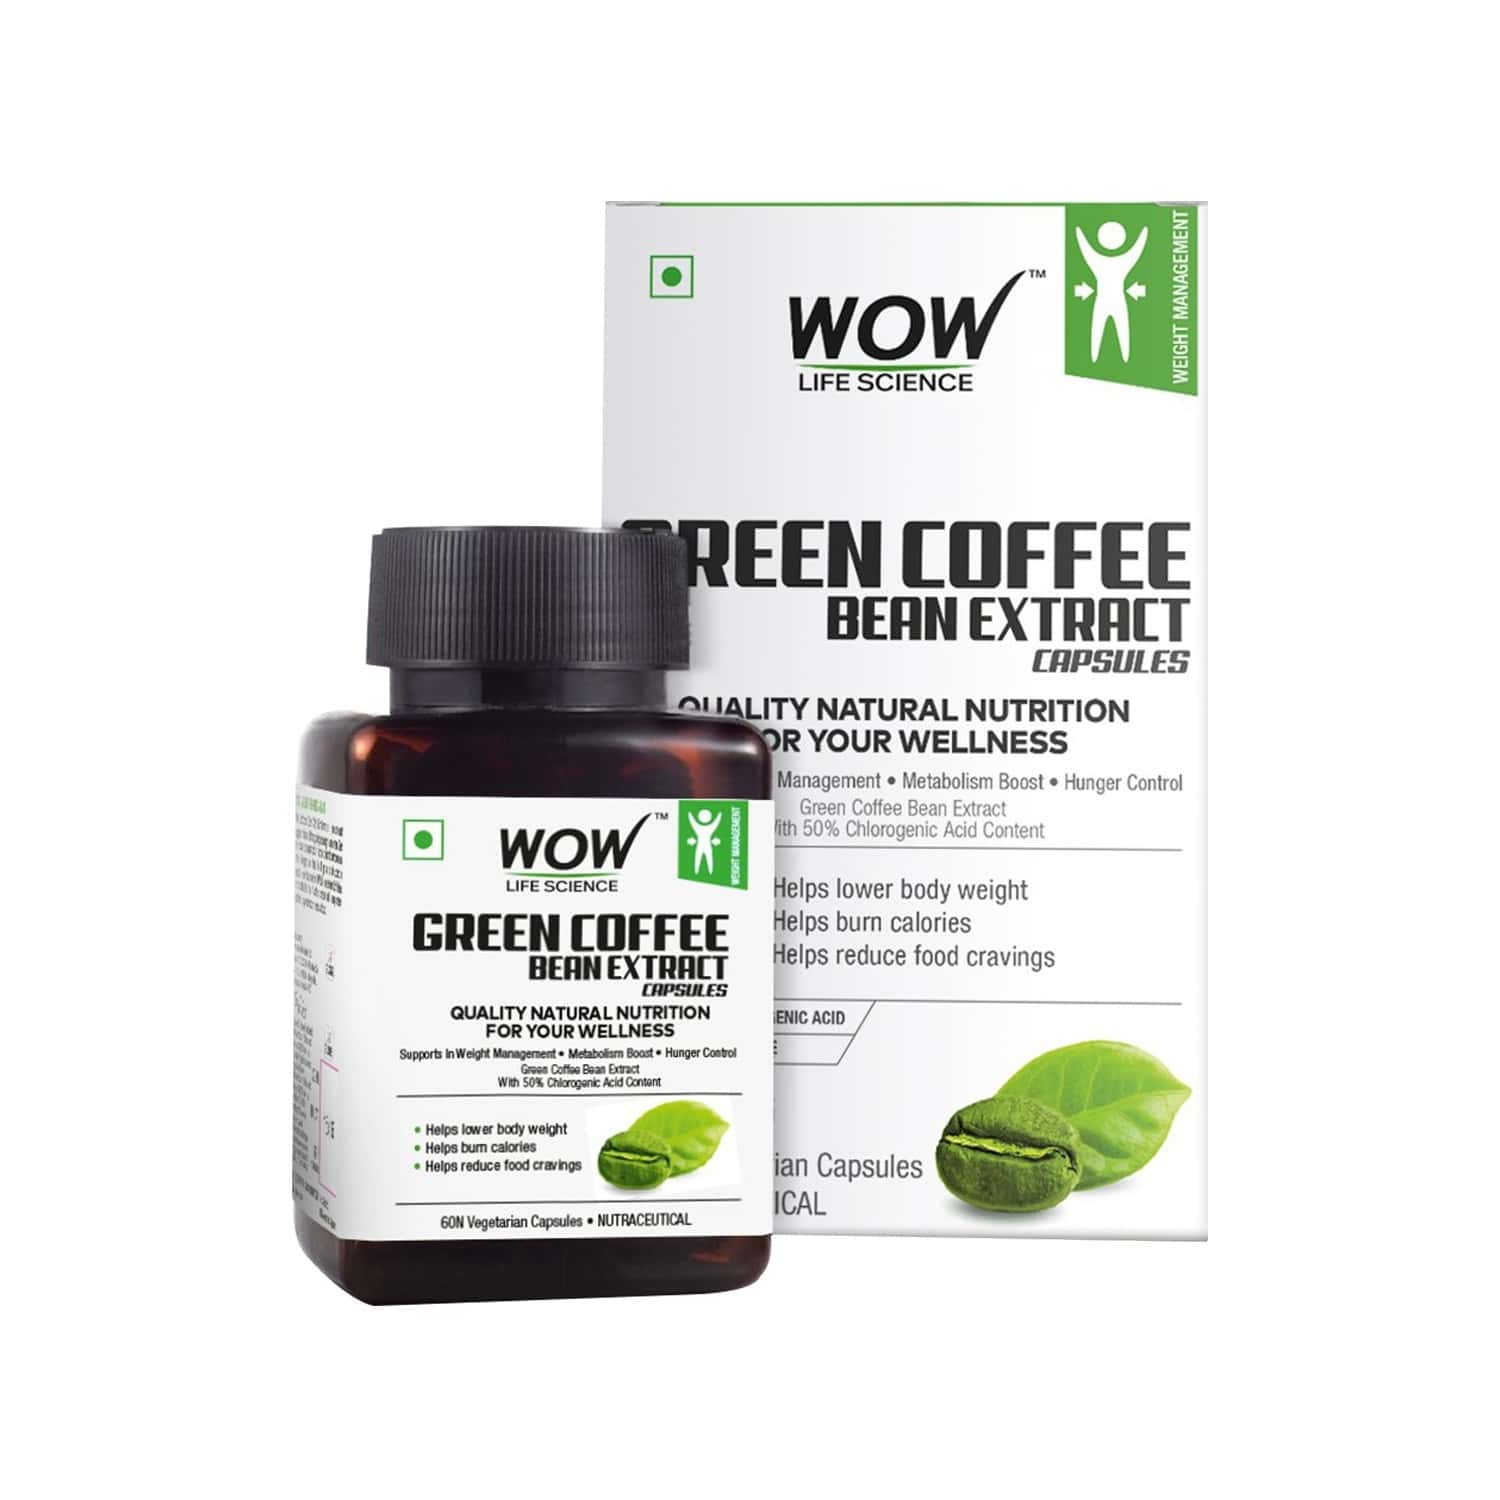 Wow Life Science Green Coffee Bean Extract Capsules - 60 Capsules